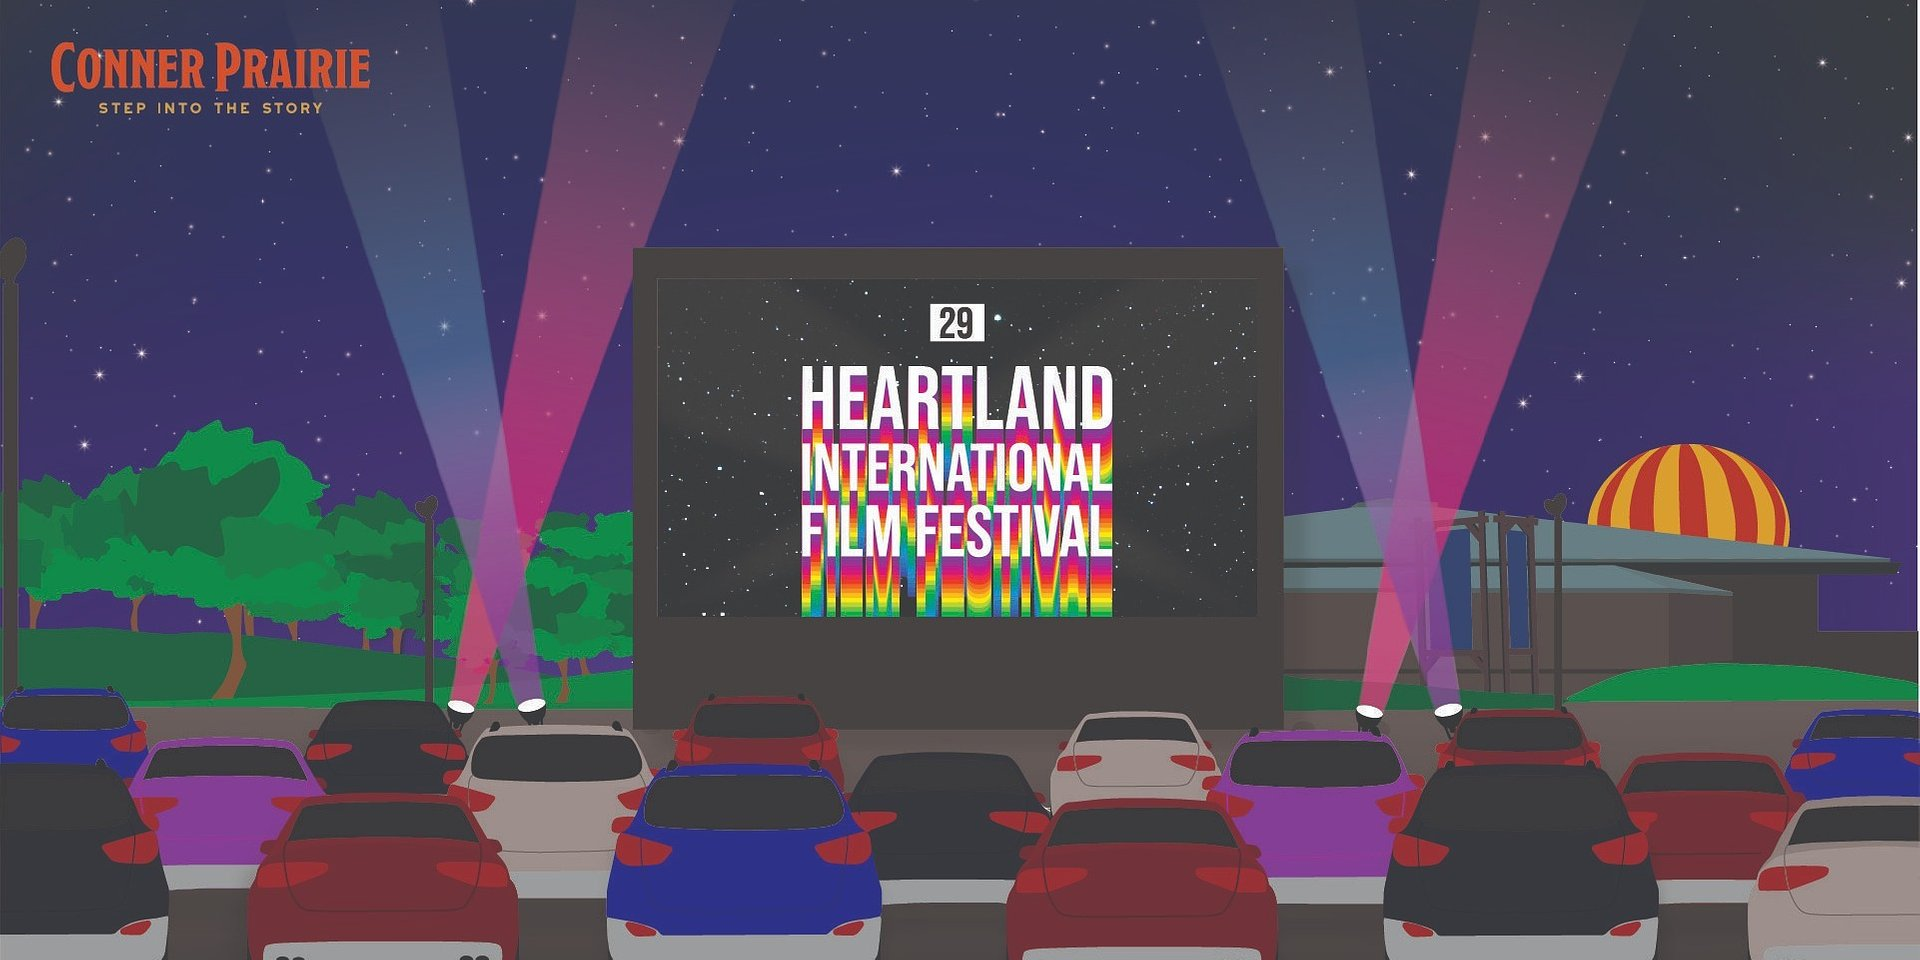 Heartland Film Announces Partnership with Conner Prairie for a Pop-Up Drive-In Theatre experience during the 29th Annual Heartland International Film Festival this October